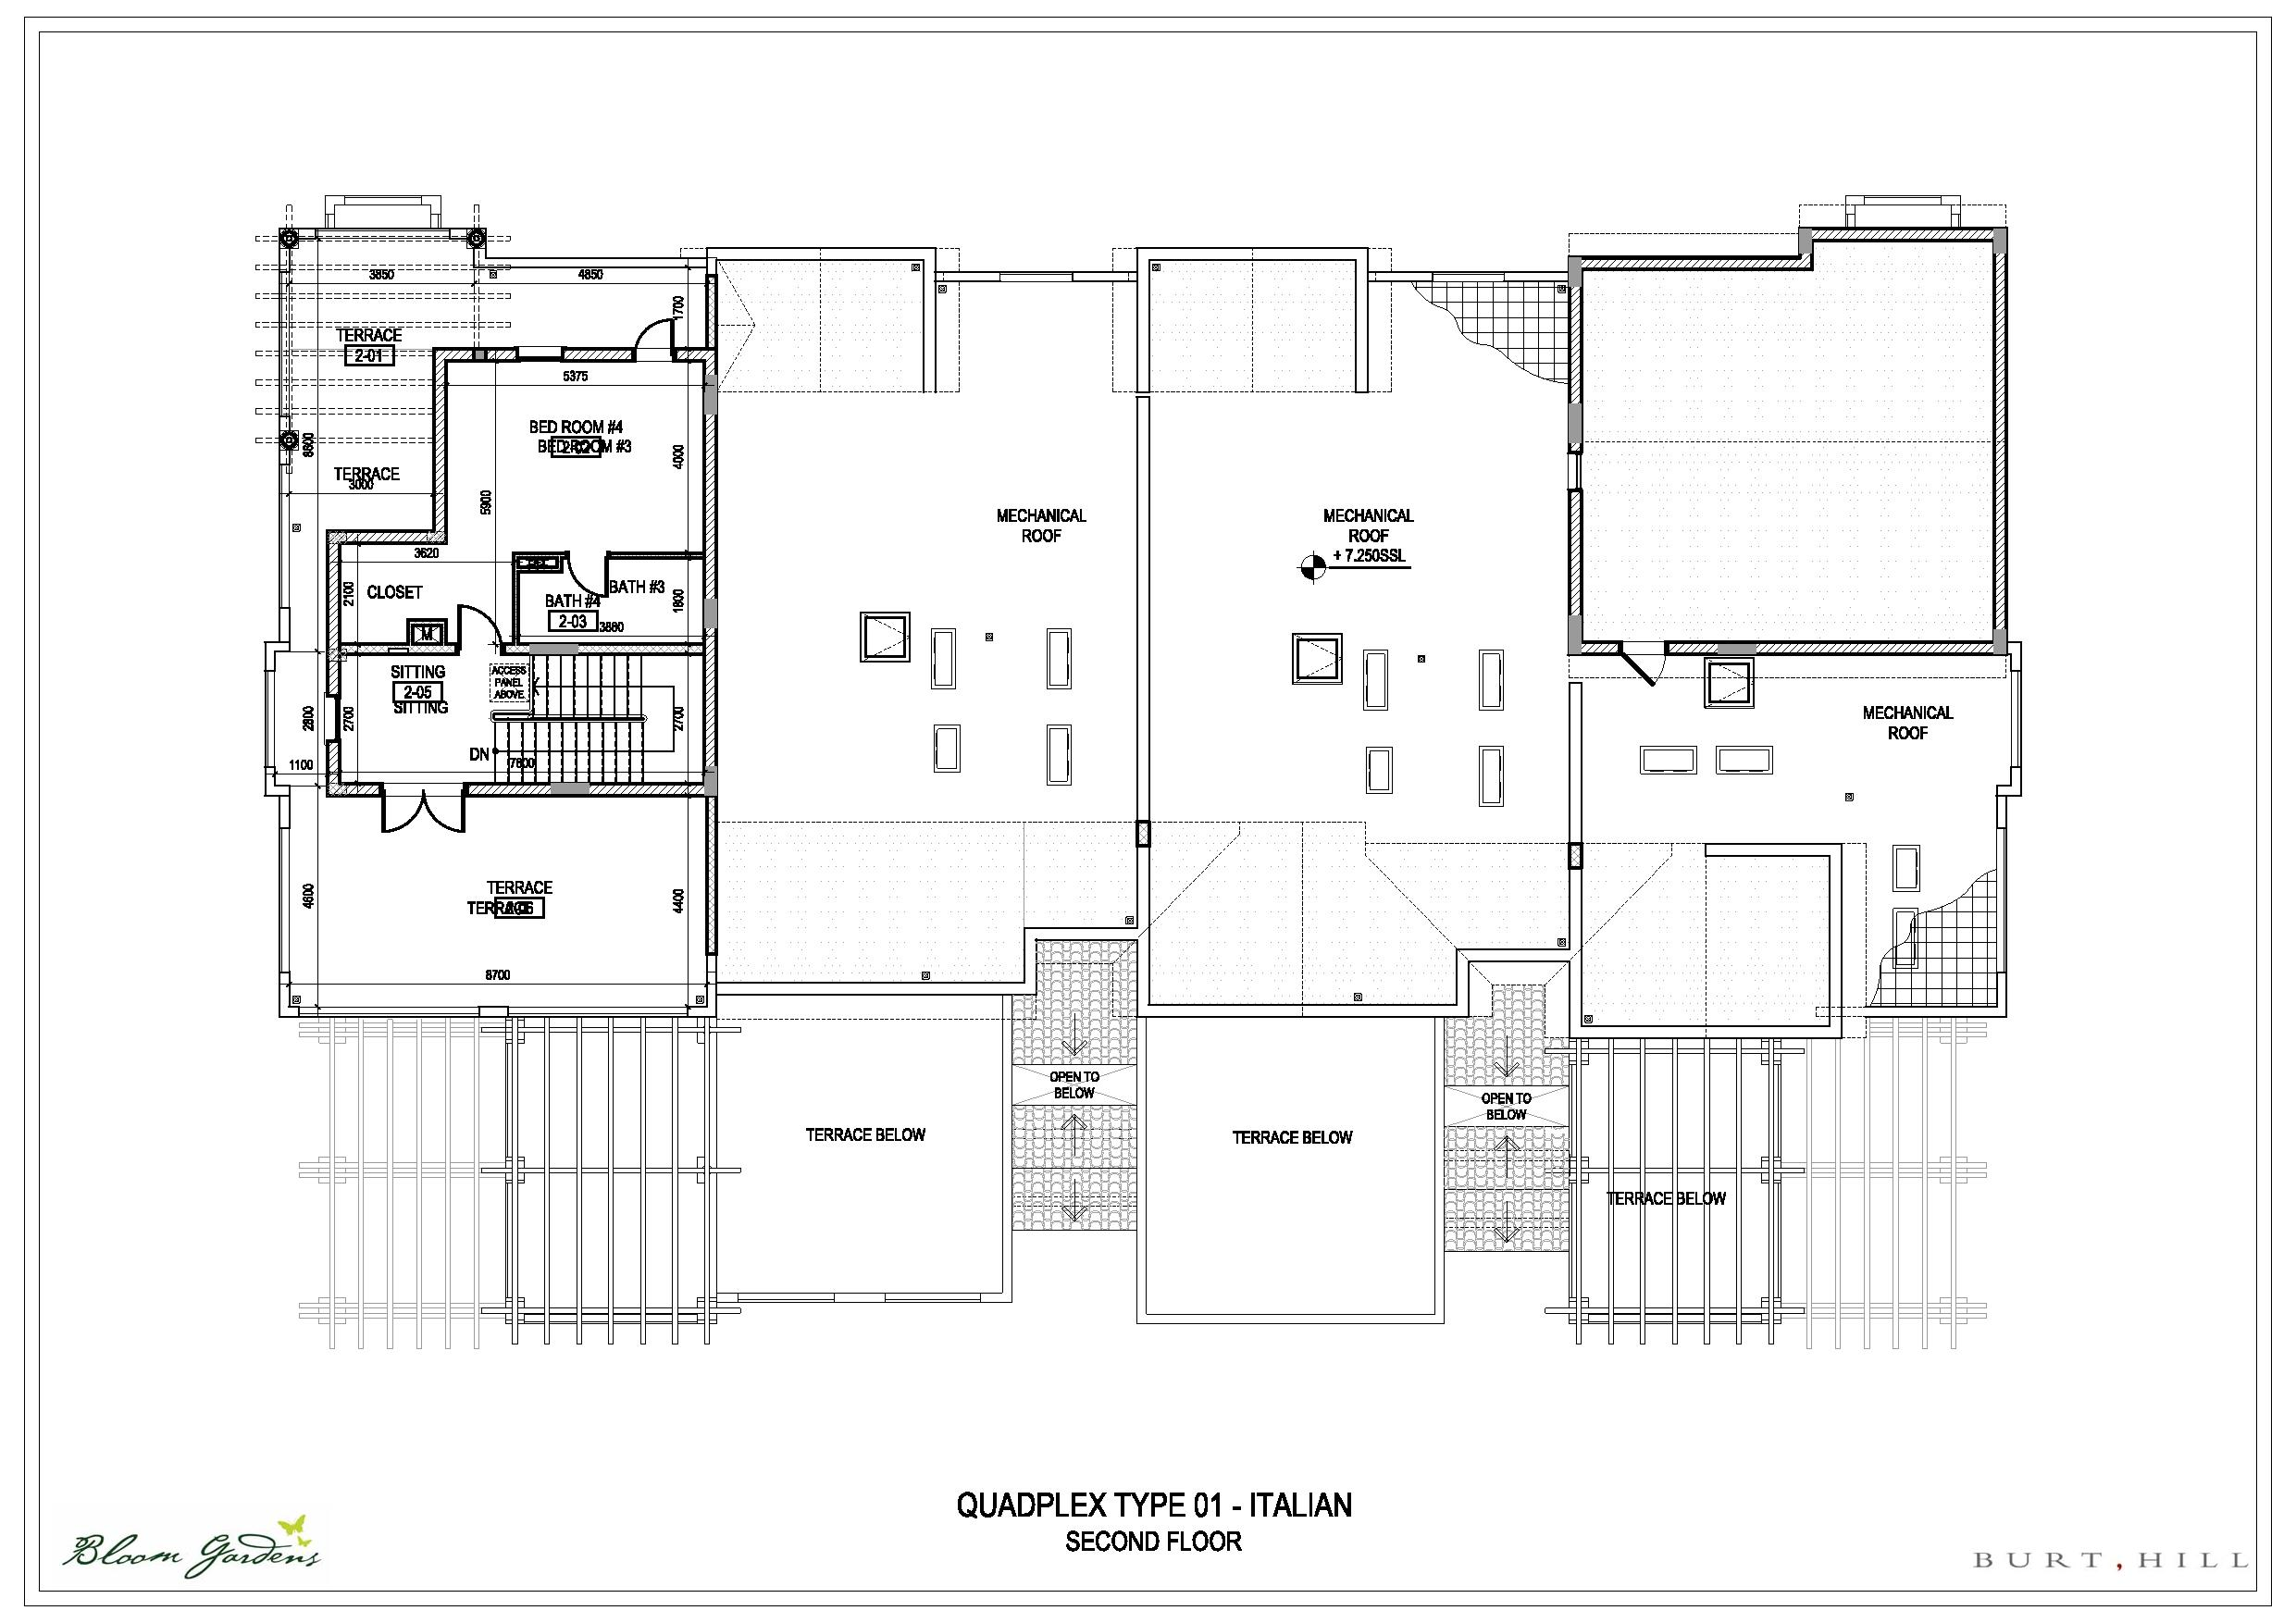 Bloom gardens villas floor plans bloom gardens abu dhabi for Quadplex plans